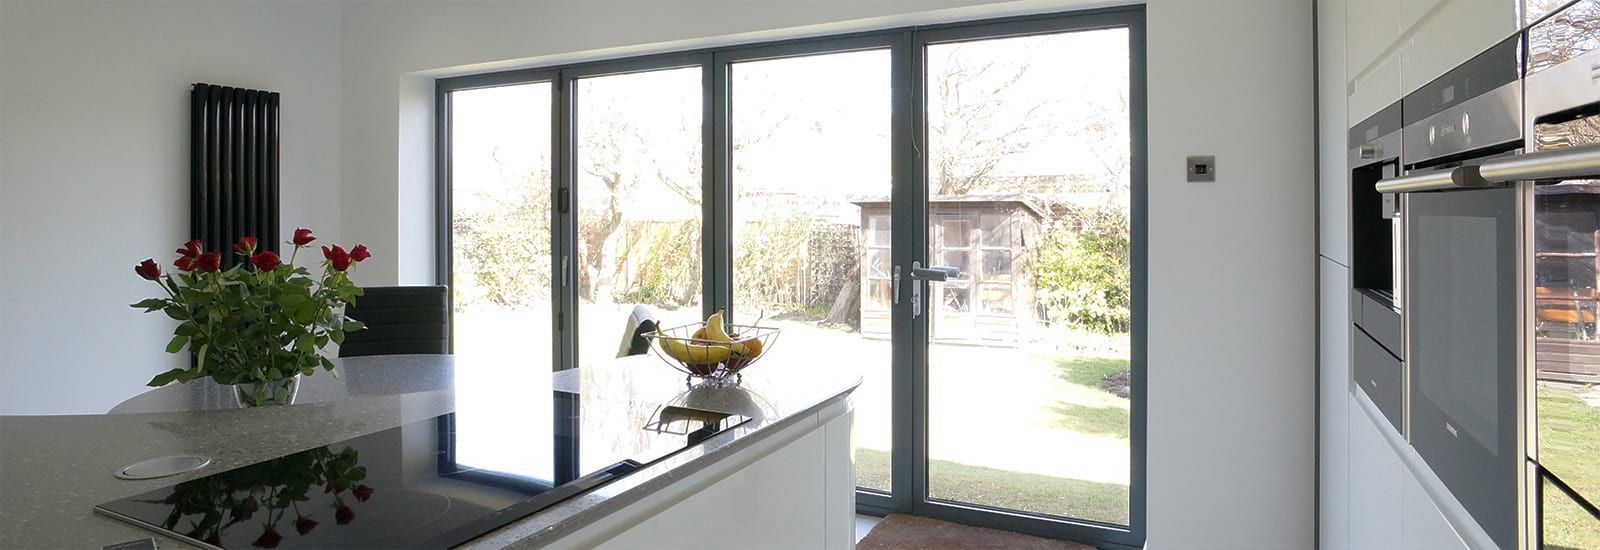 Bifolds: The Smart System